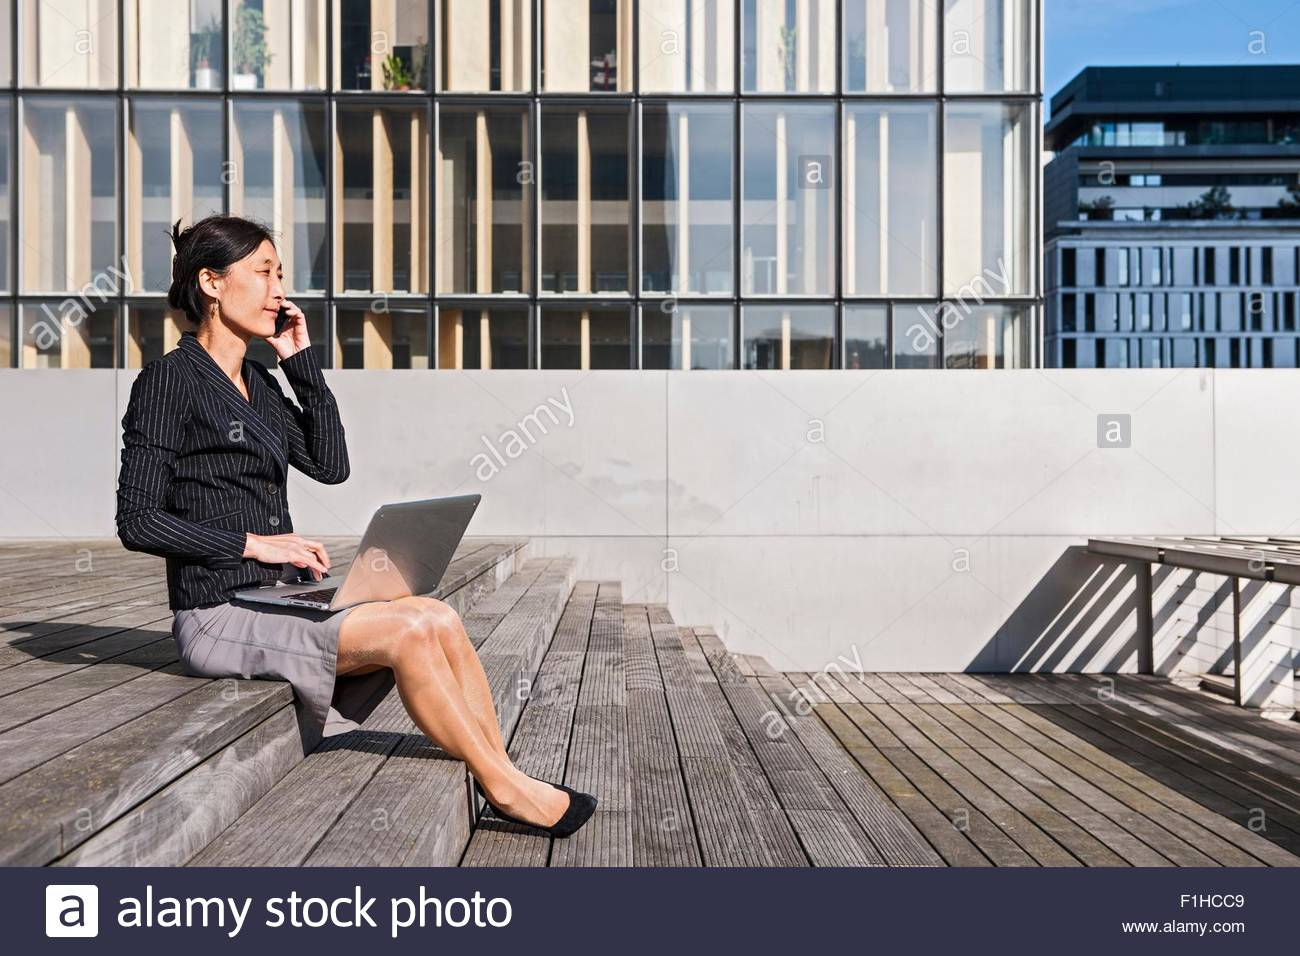 Businesswoman using laptop in face d'immeuble, Paris, Île-de-France, France Photo Stock